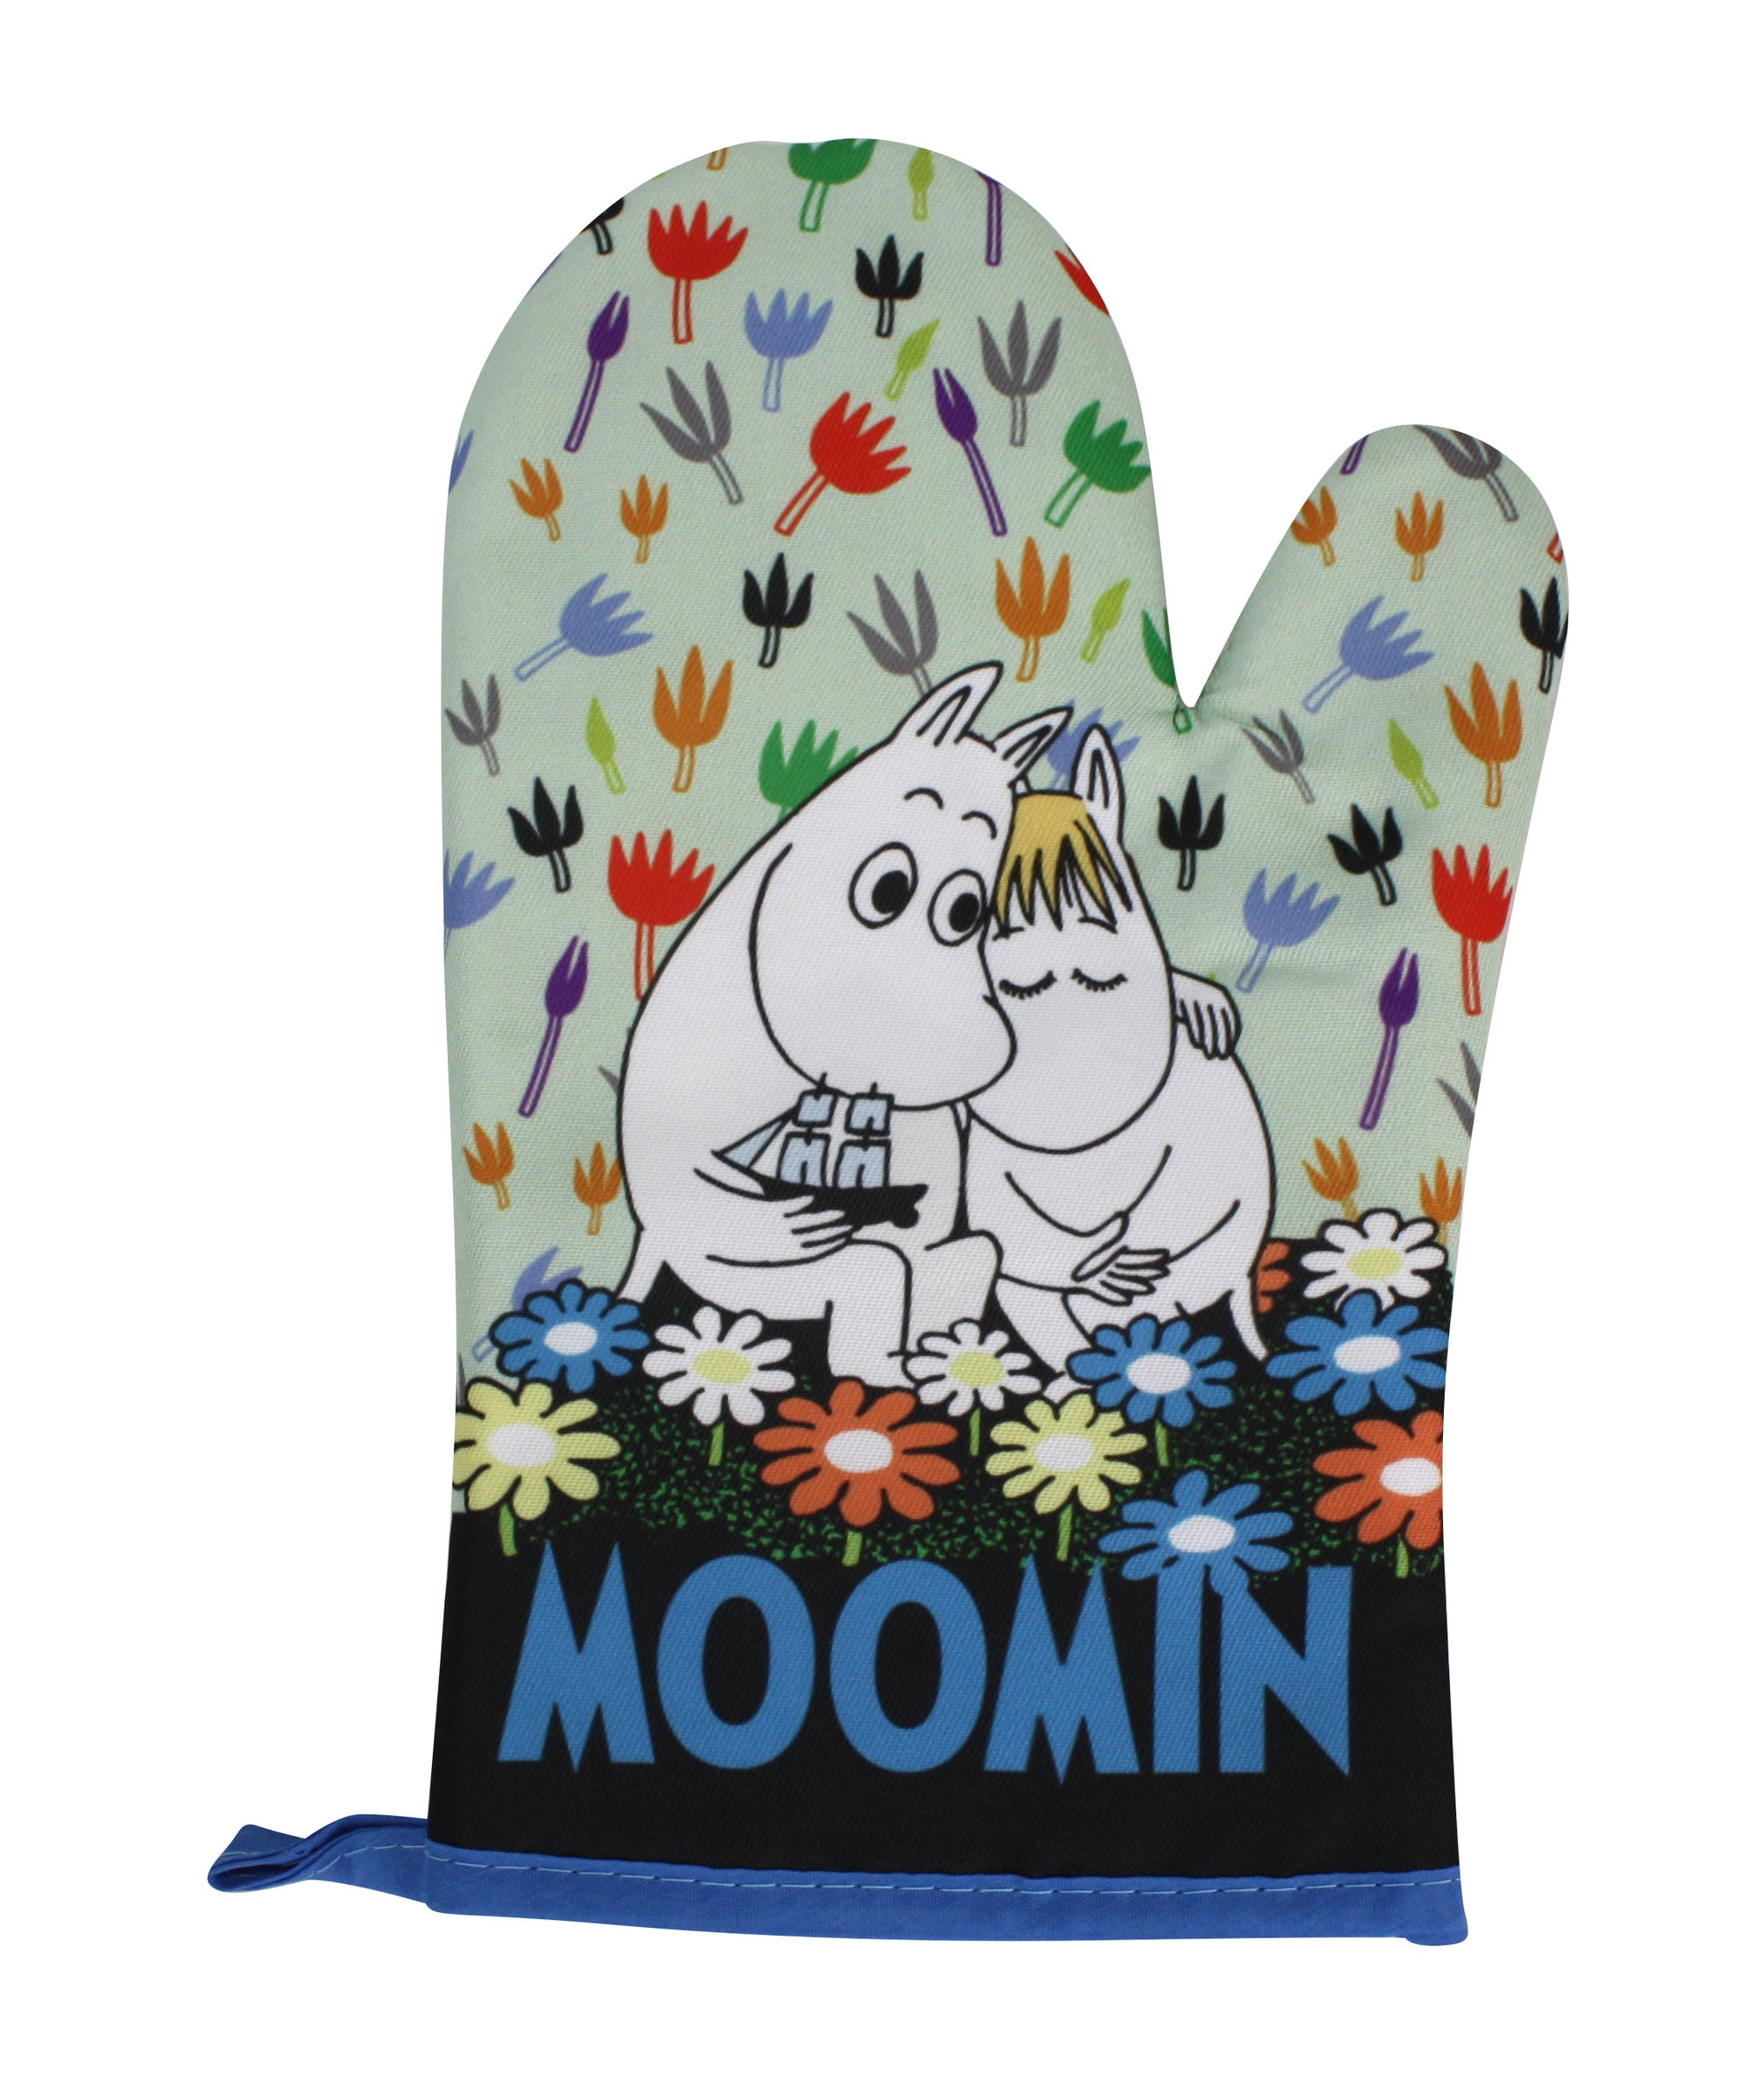 Moomin Oven Glove, Oven Mitt, Moomintroll and Snork Maiden - farangshop-co